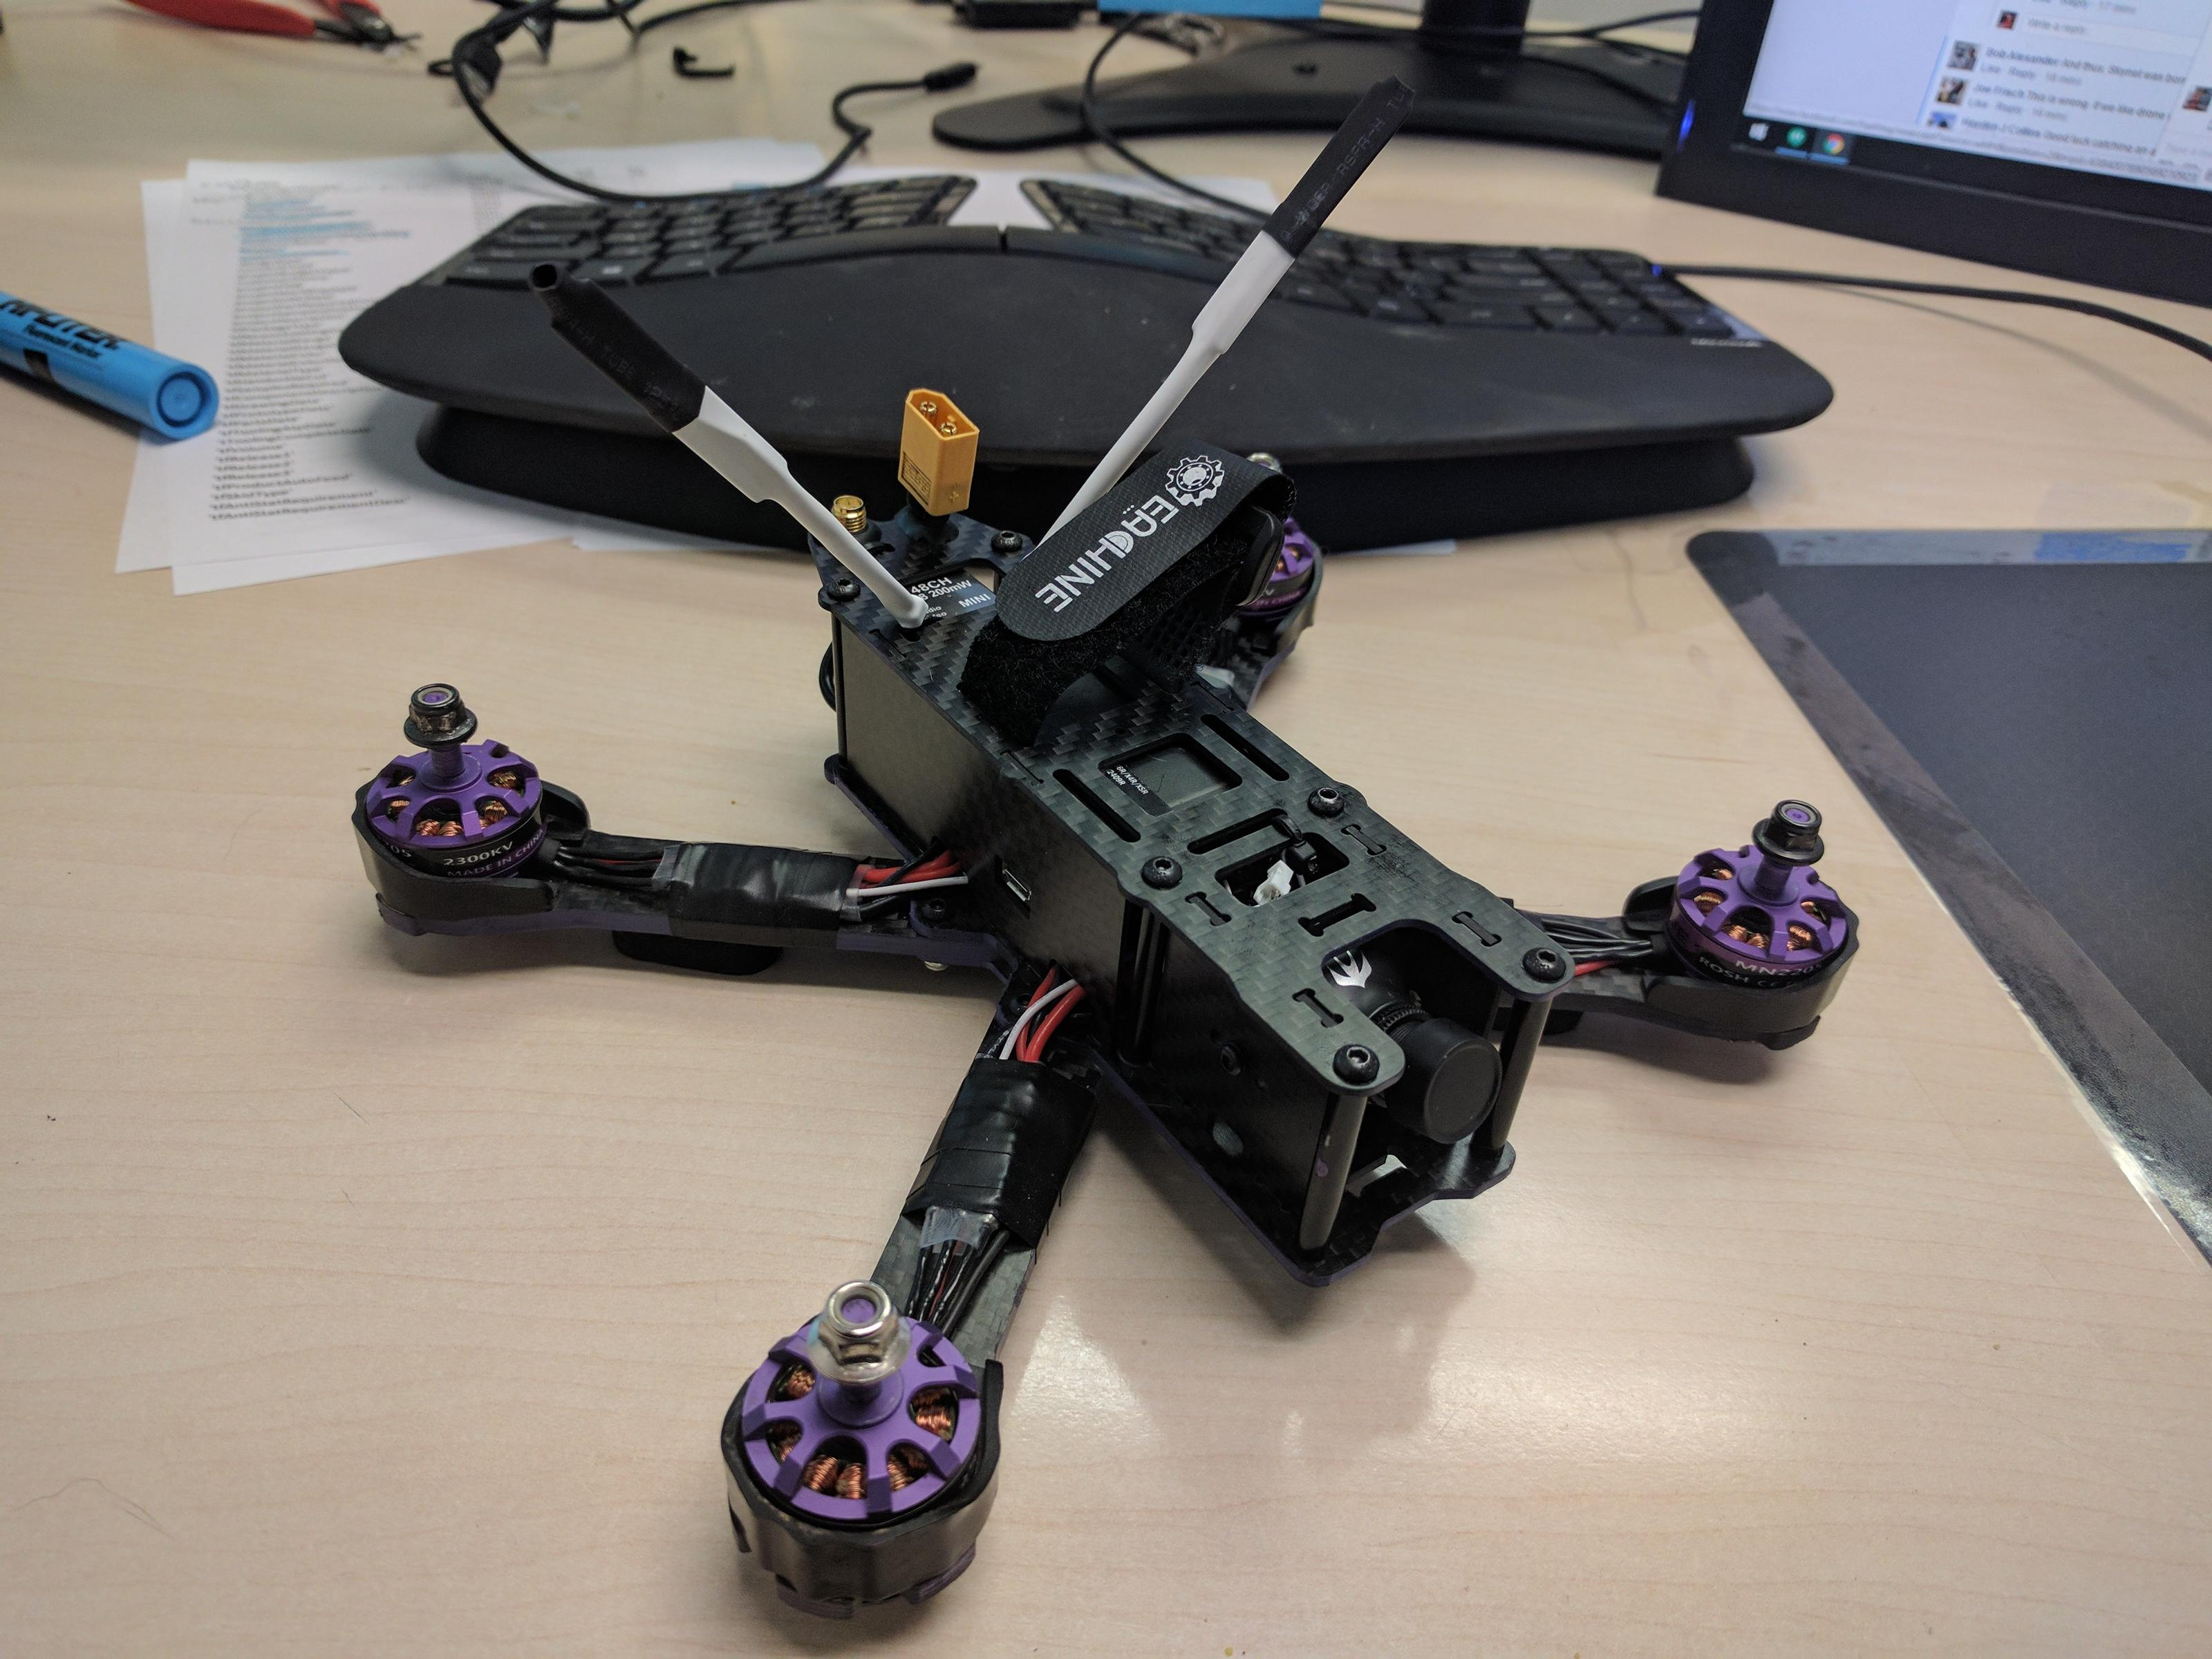 Mini-Review Eachine Wizard X220 ARF F3 - Updated Version